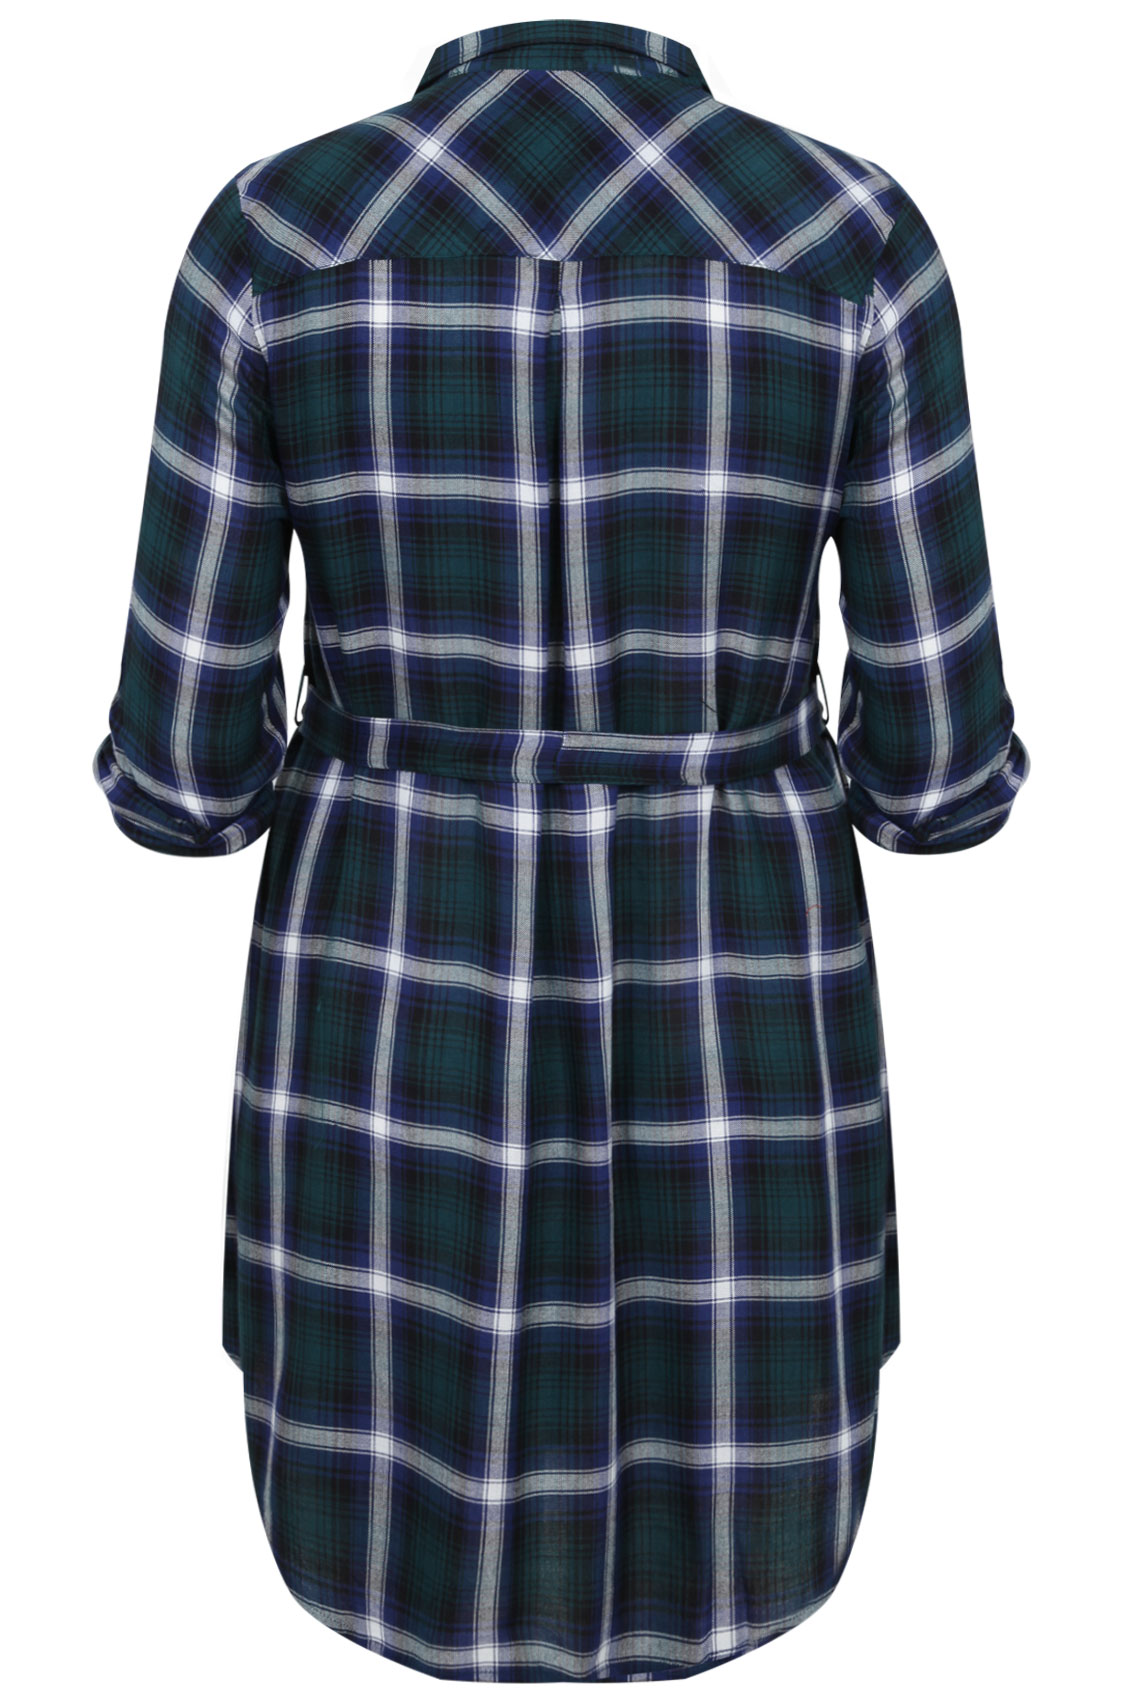 Green and navy check tunic with tie waist plus sizes 16 18 for 20 34 35 dress shirts